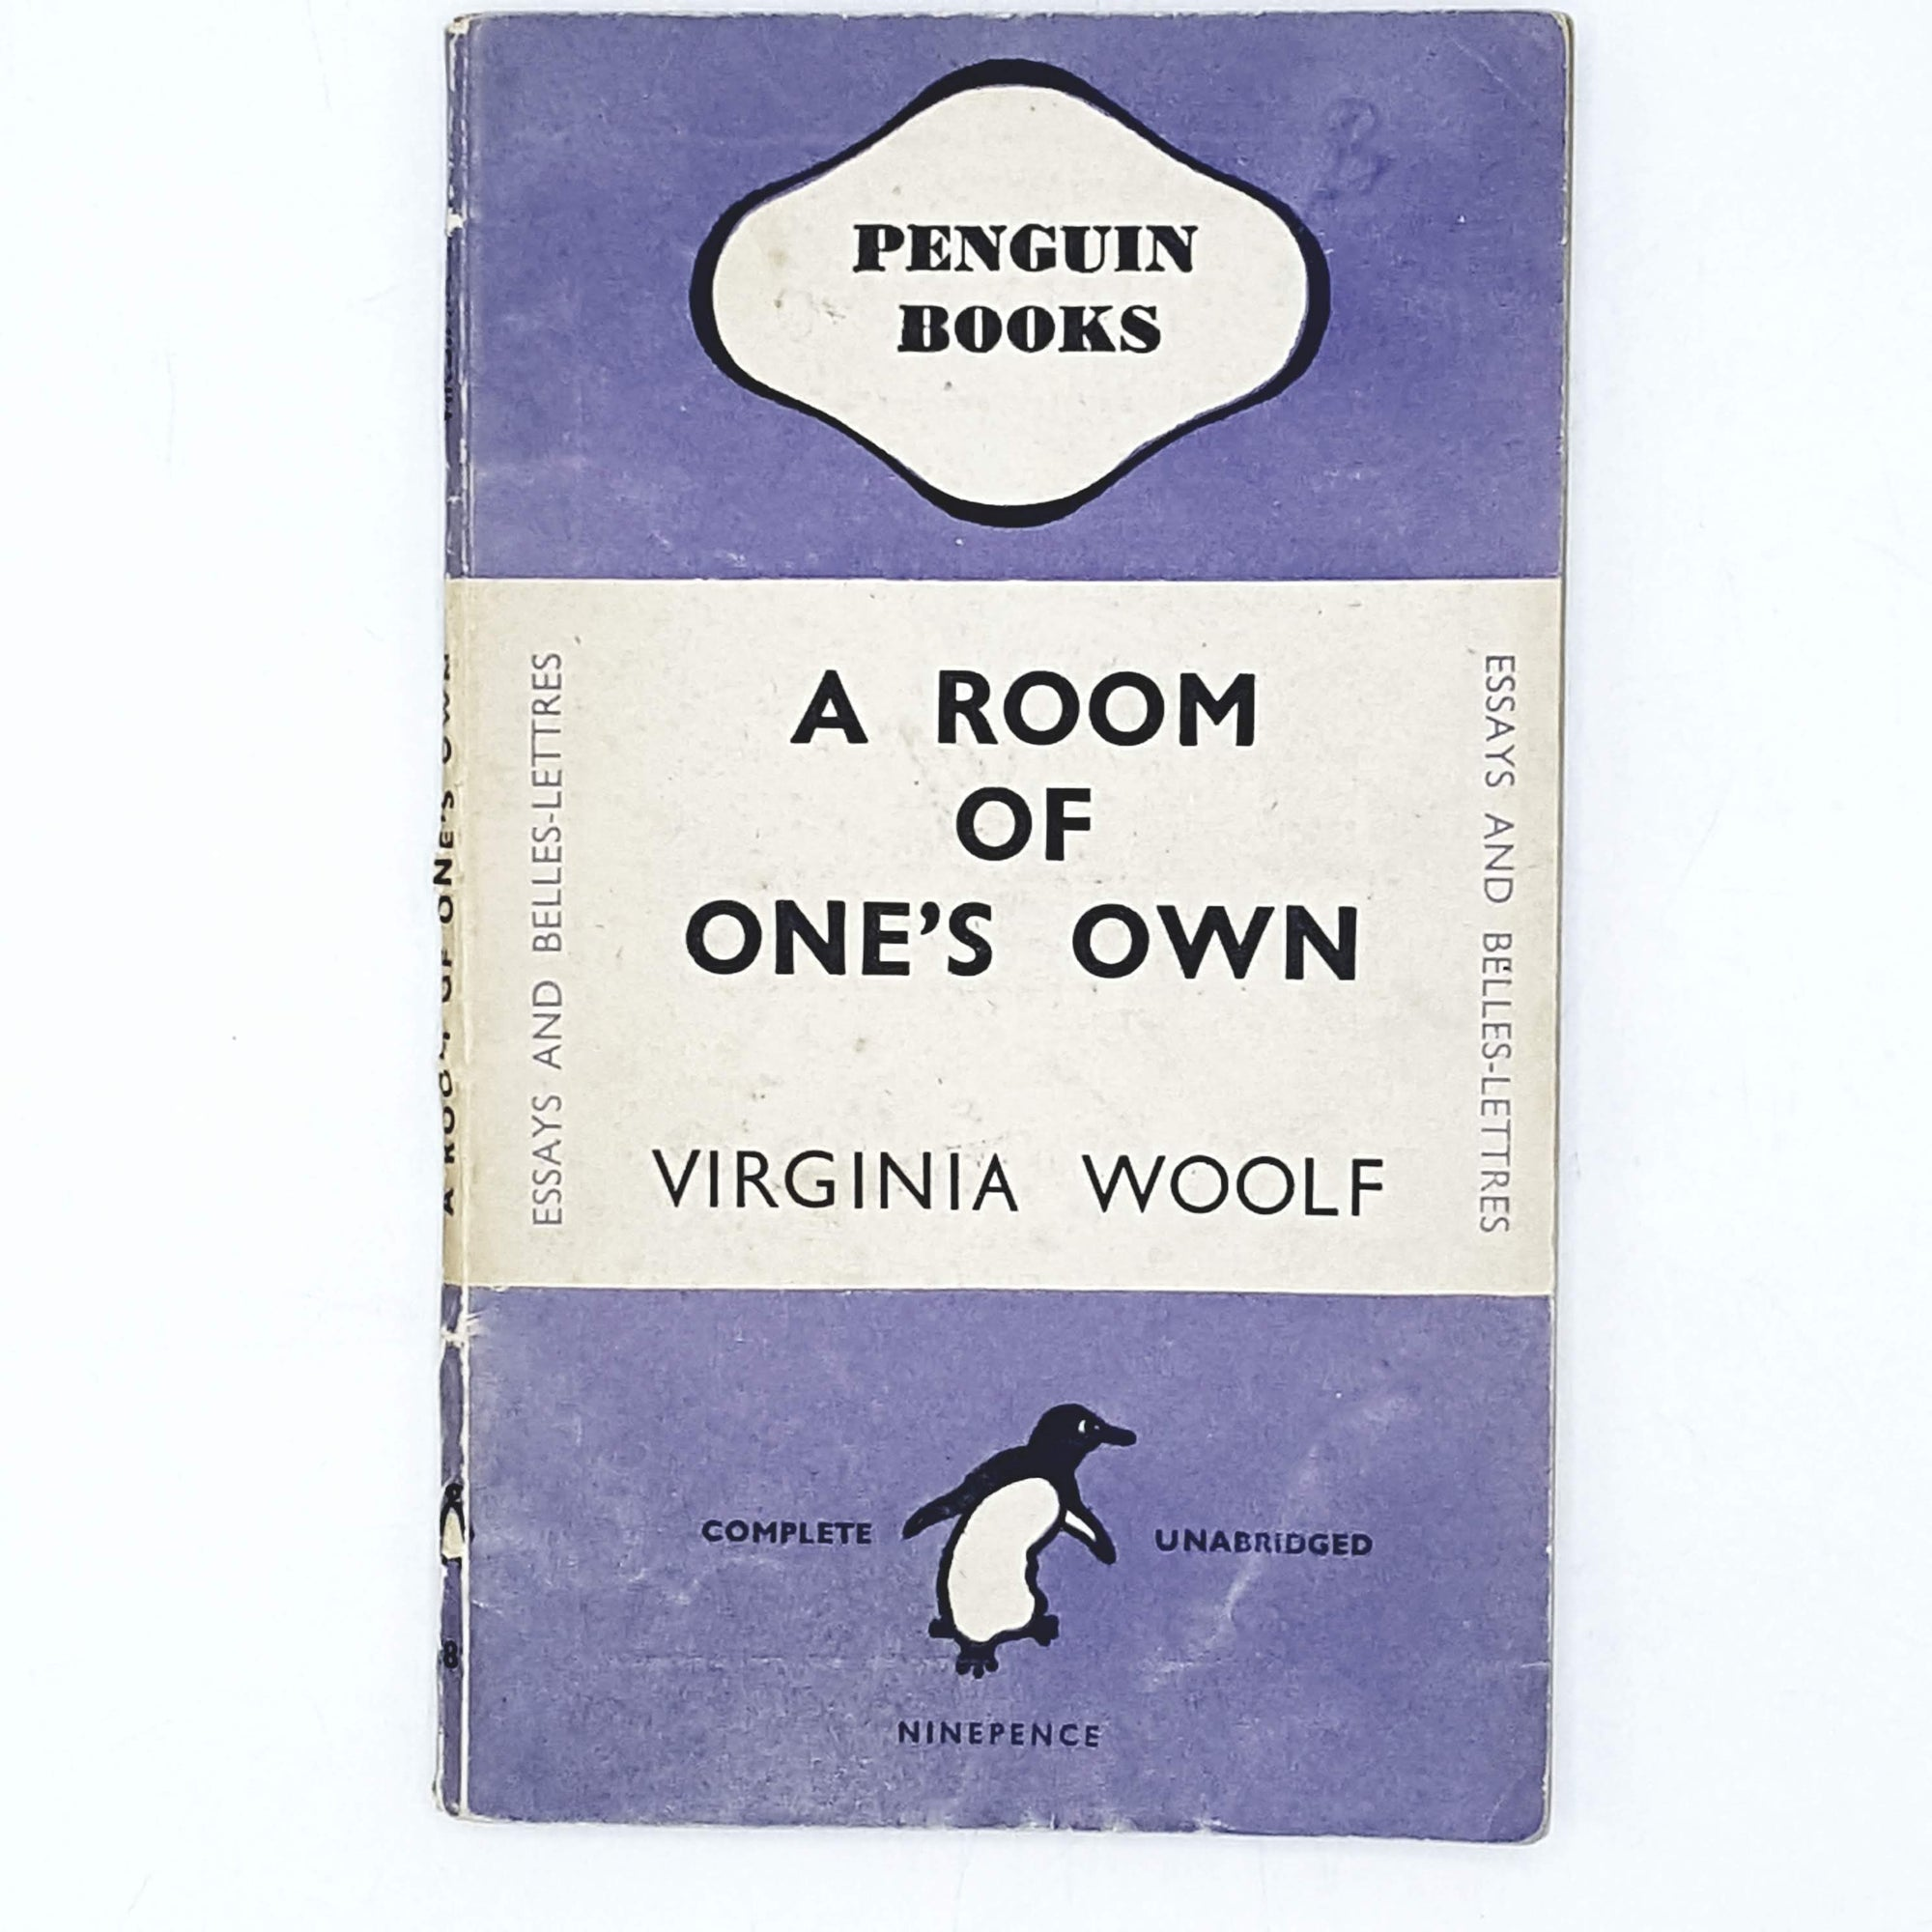 purple-virginia-woolf-room-vintage-penguin-country-house-library